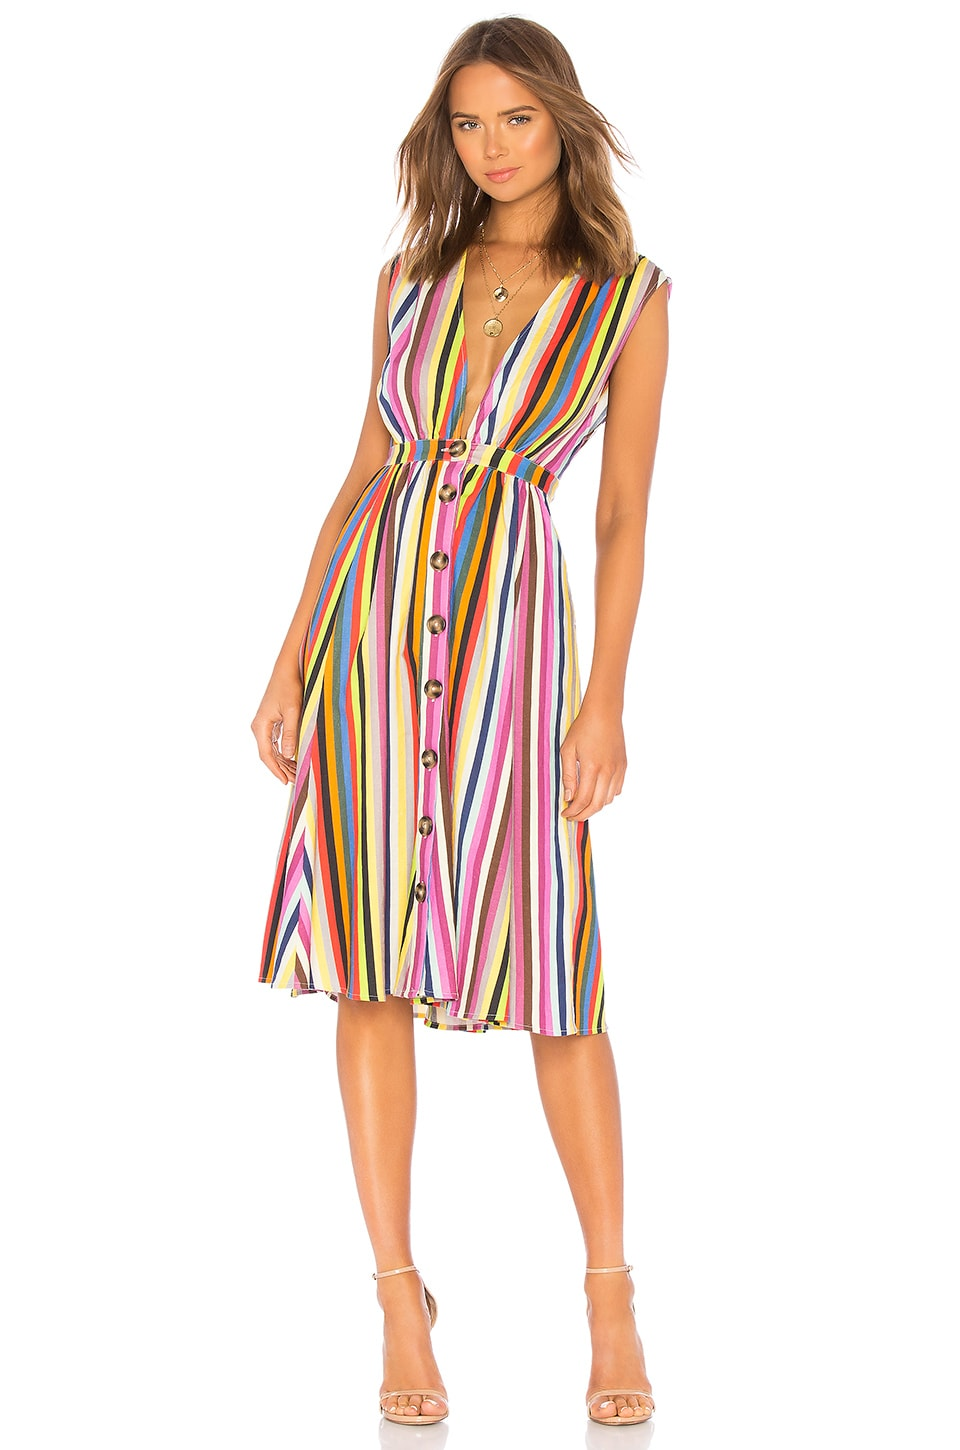 LPA Shirred Button Up Dress in Rainbow Stripe